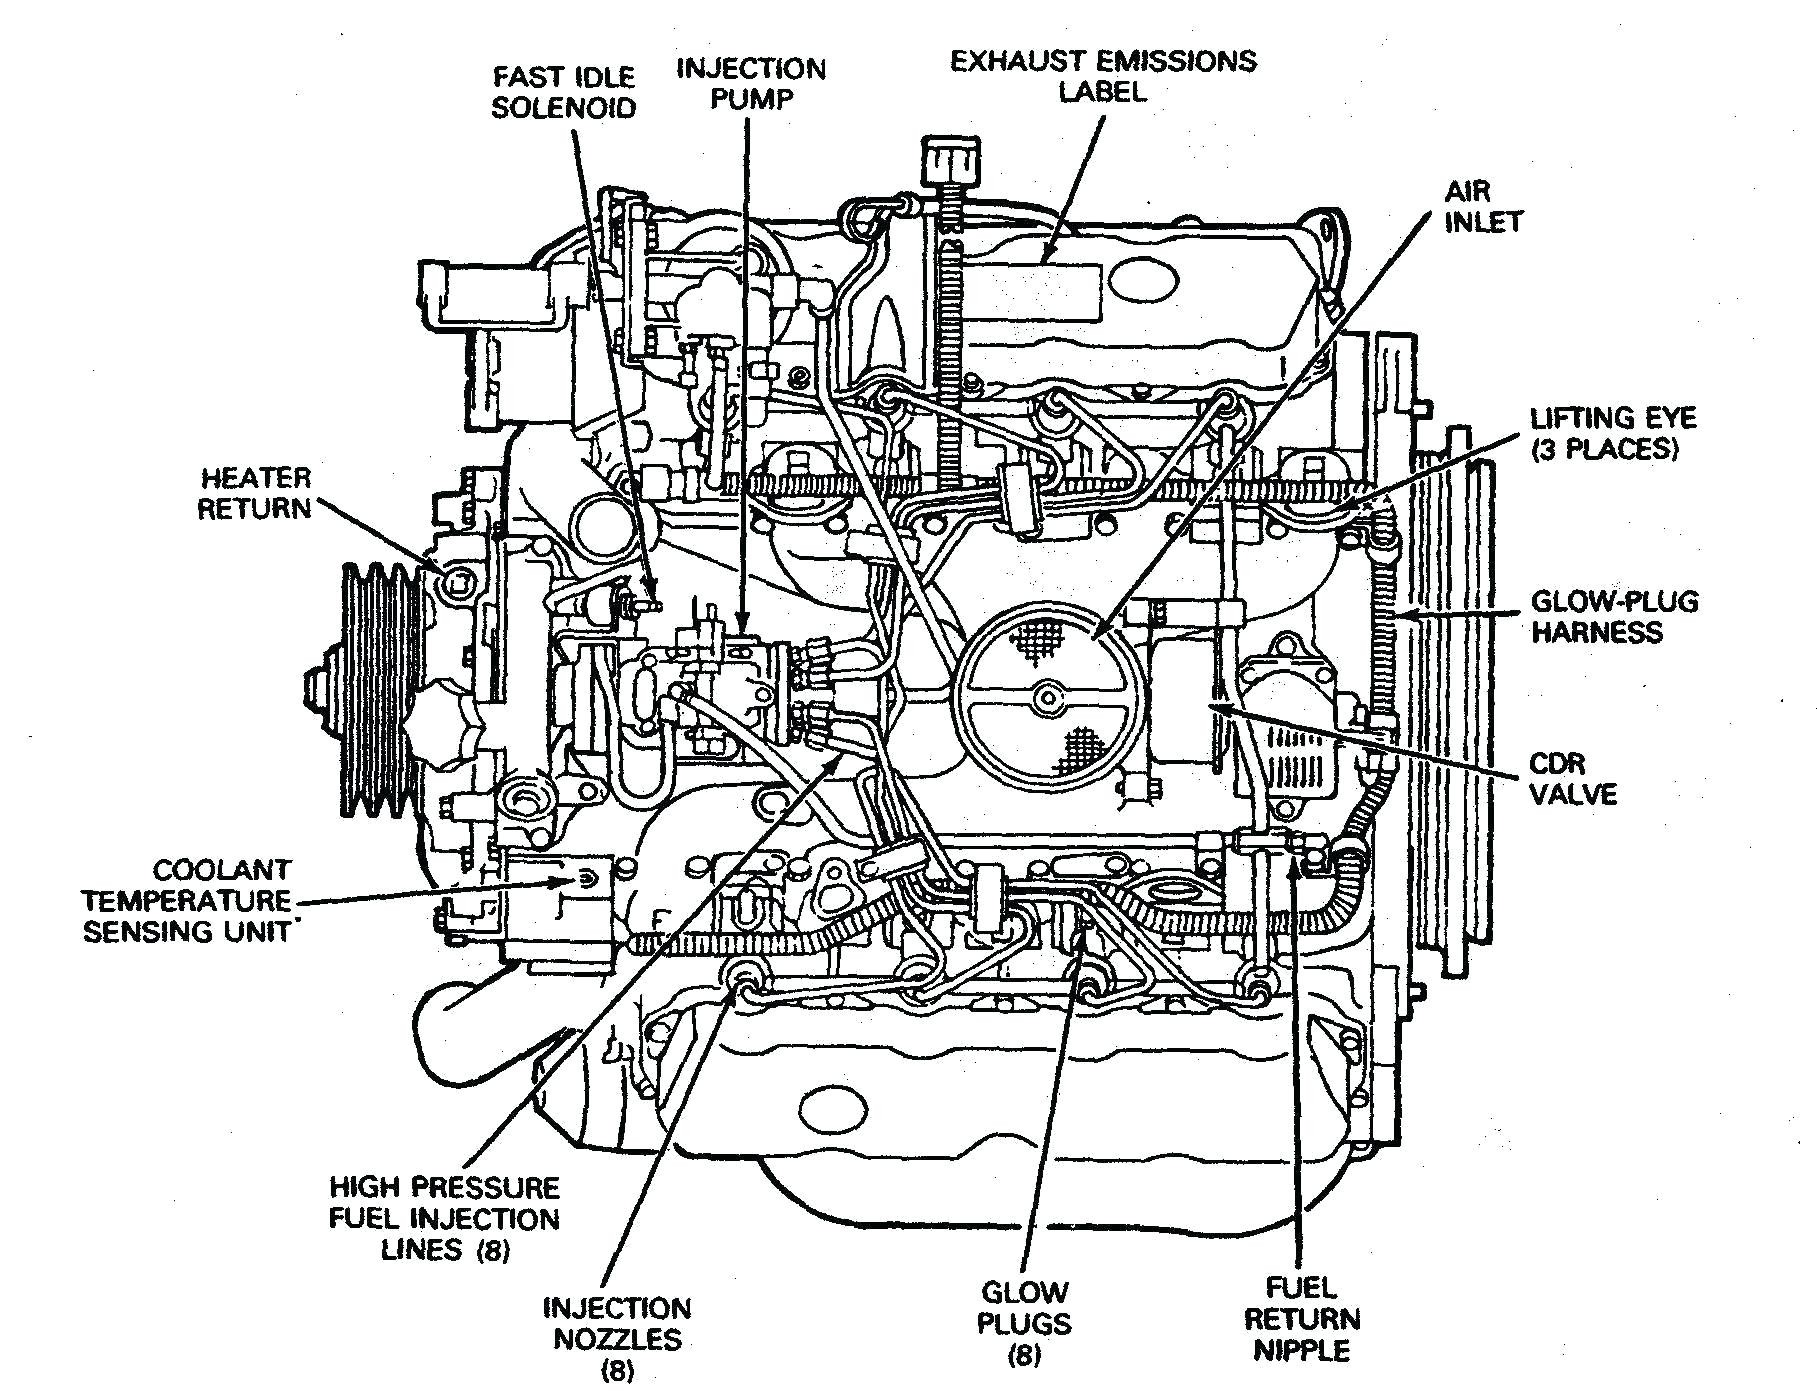 hight resolution of diagram of car engine parts kawasaki engine parts diagram delighted inspiration of diagram of car engine